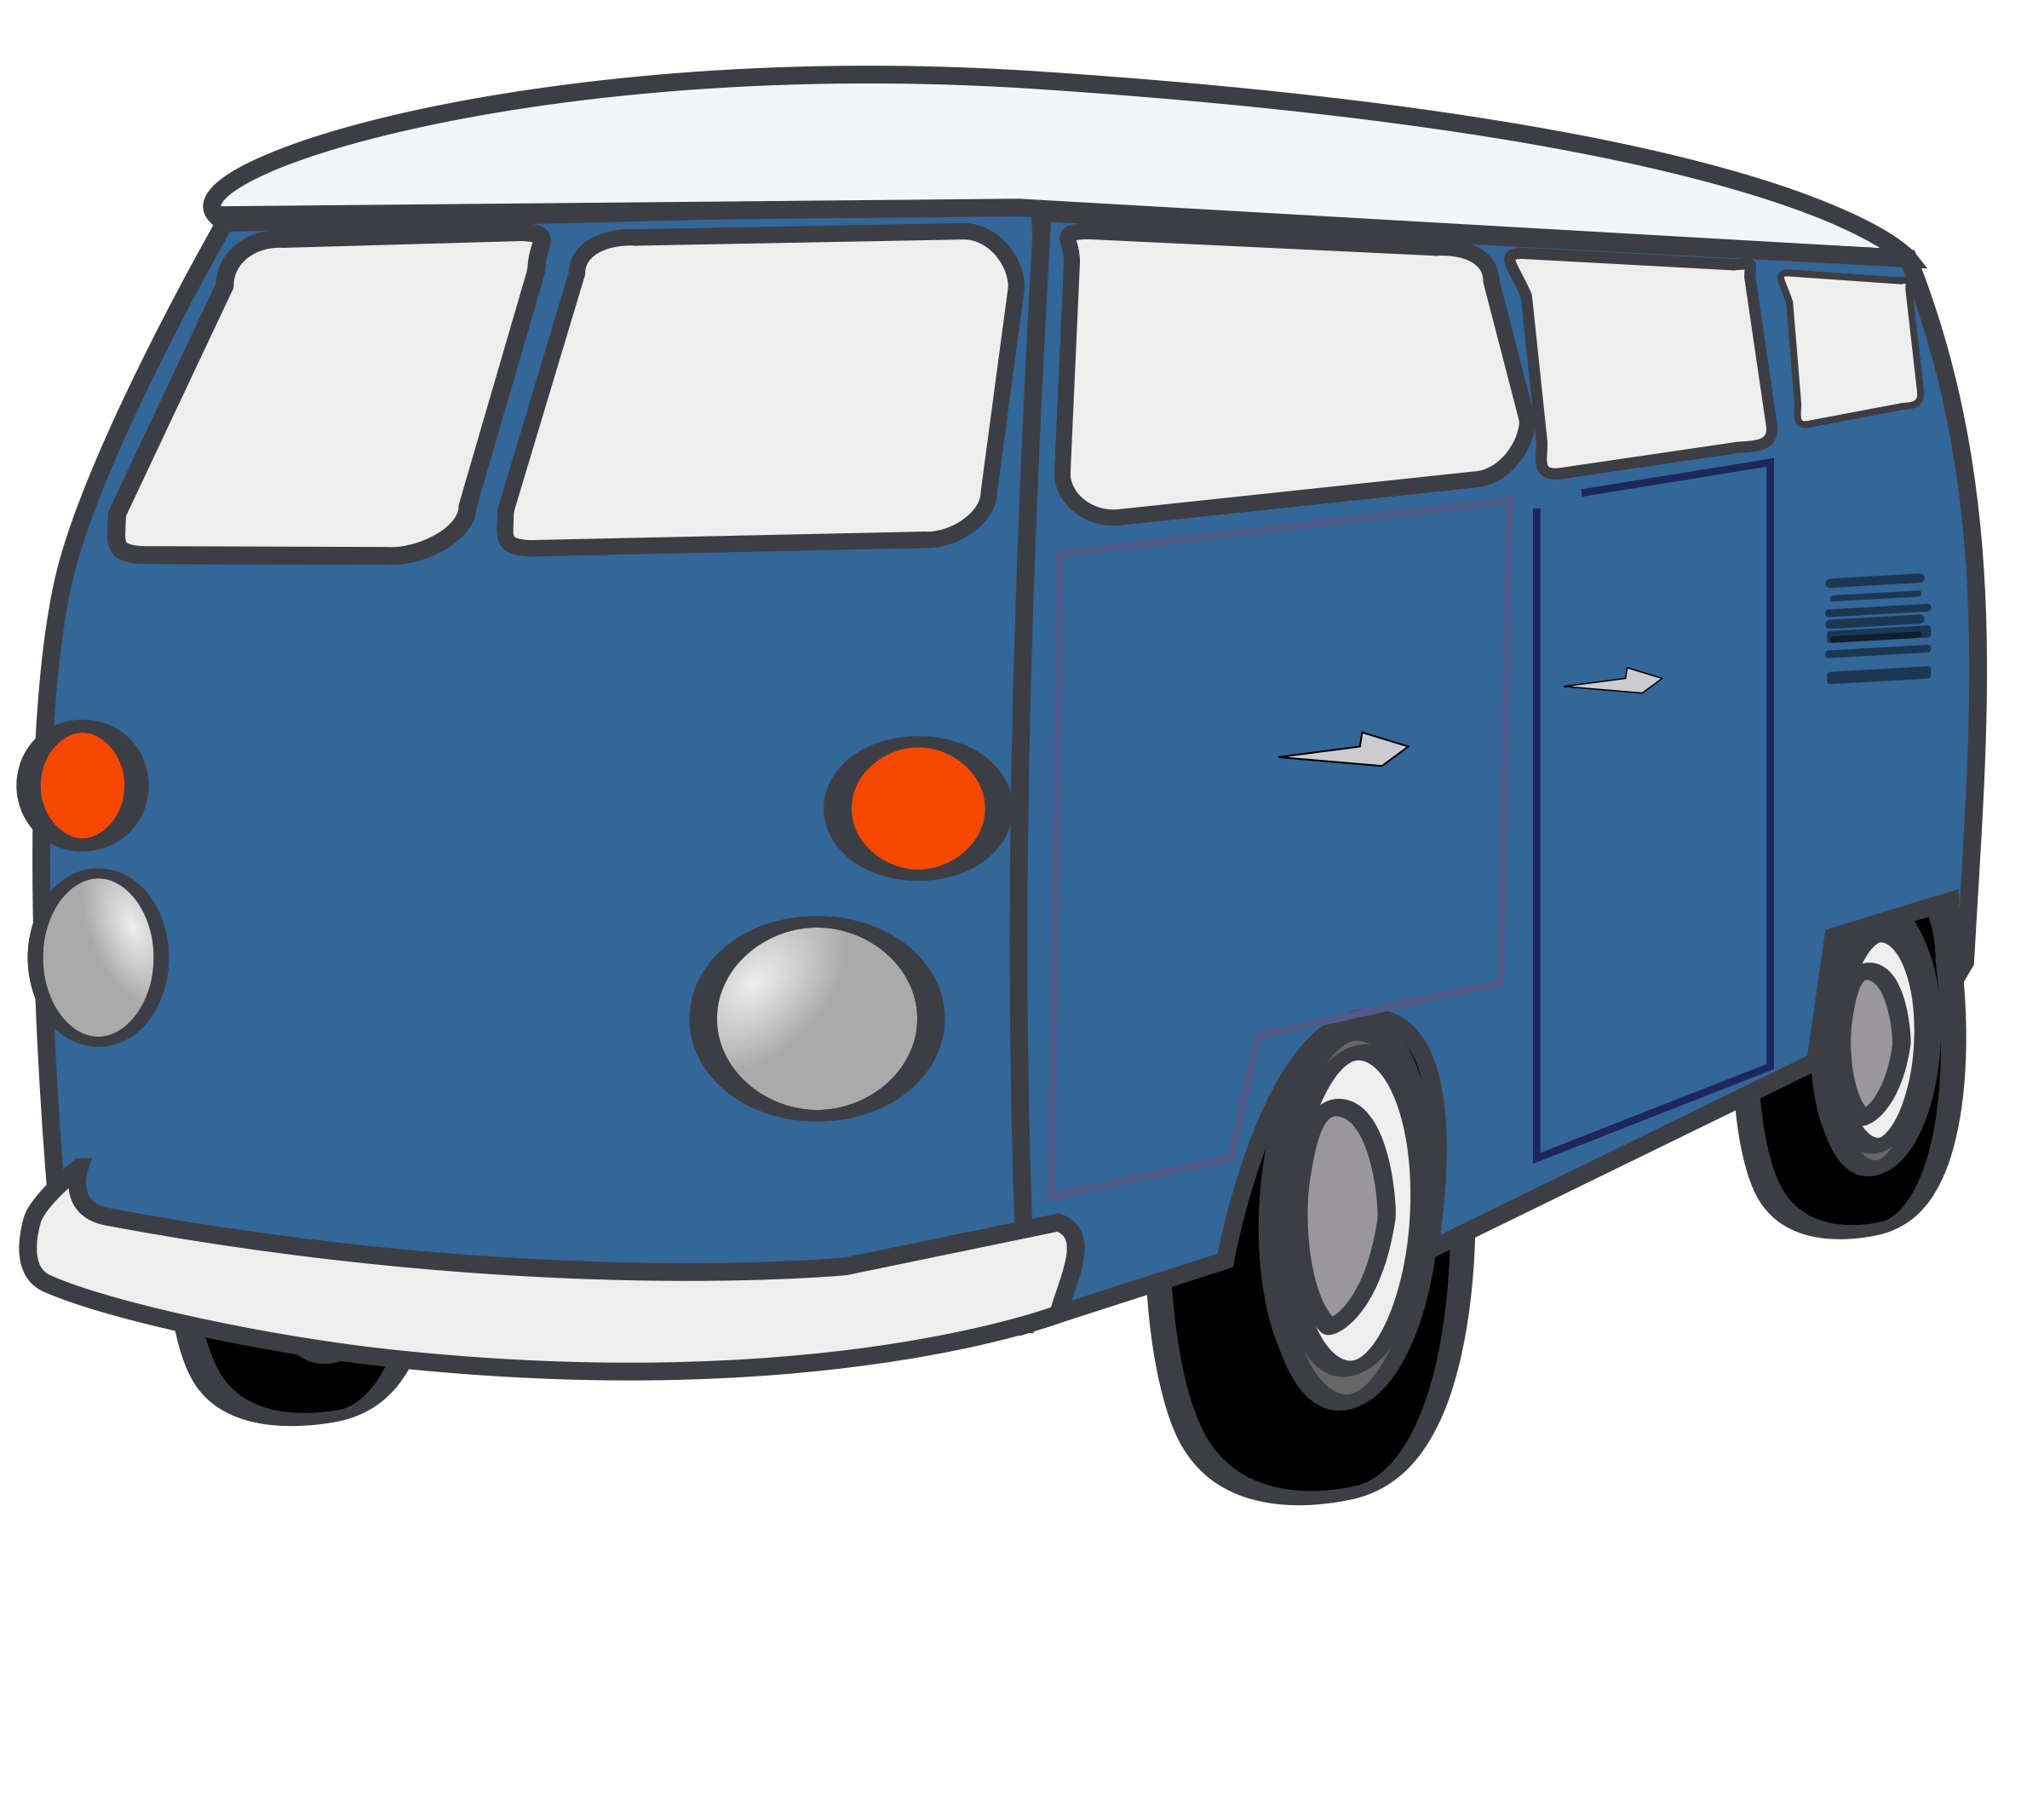 Vw bus clipart black and white jpg freeuse library 57+ Vw Bus Clipart | ClipartLook jpg freeuse library